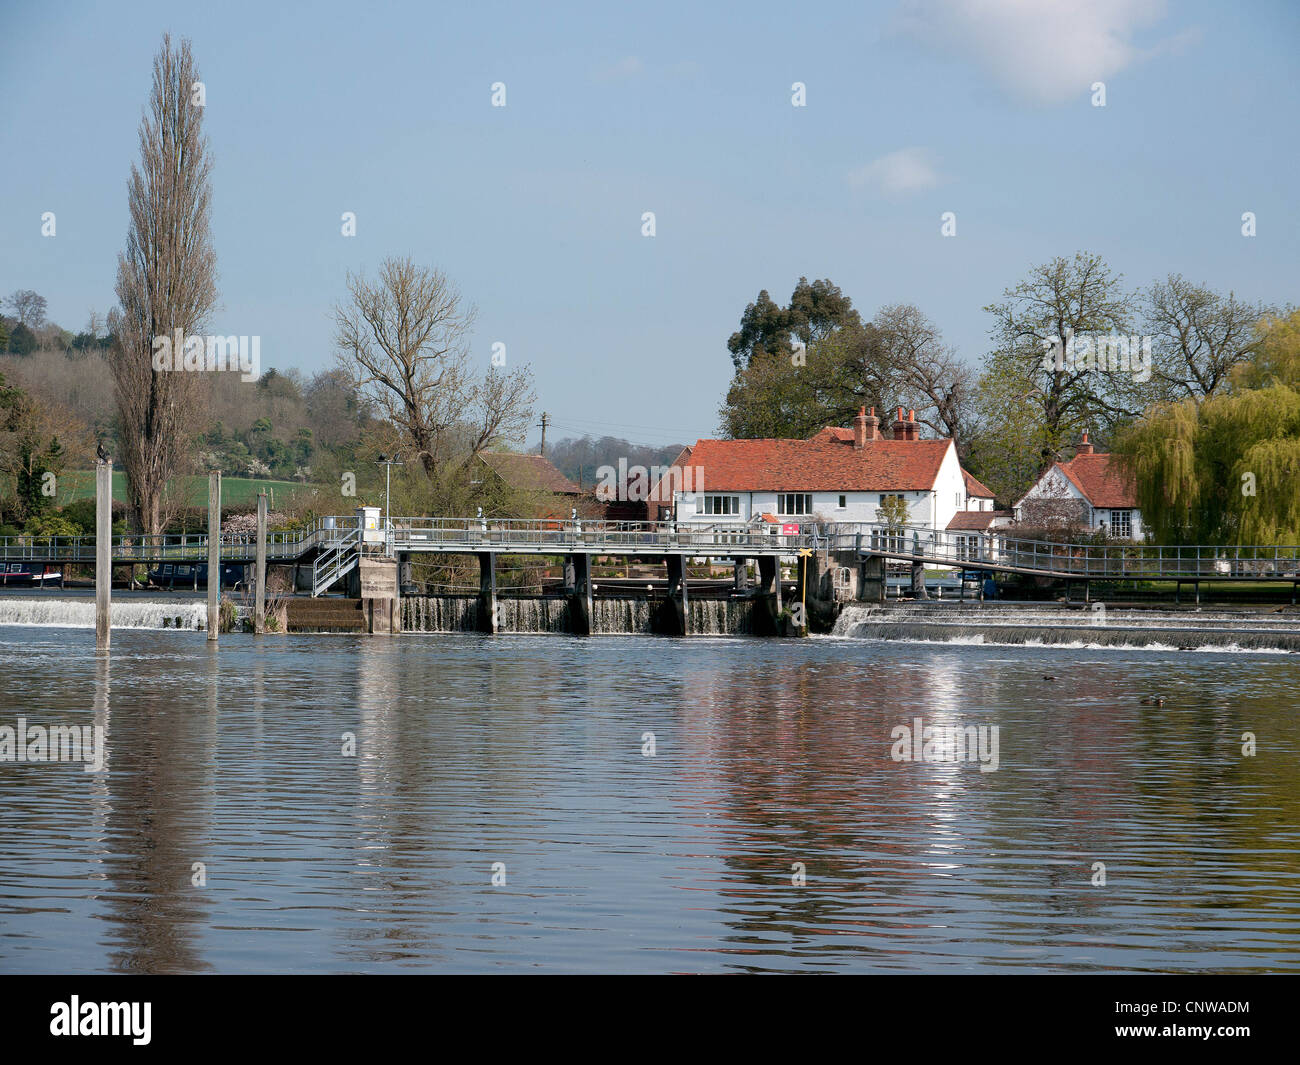 Shiplake Lock and weir on the River Thames. Oxfordshire, UK - Stock Image